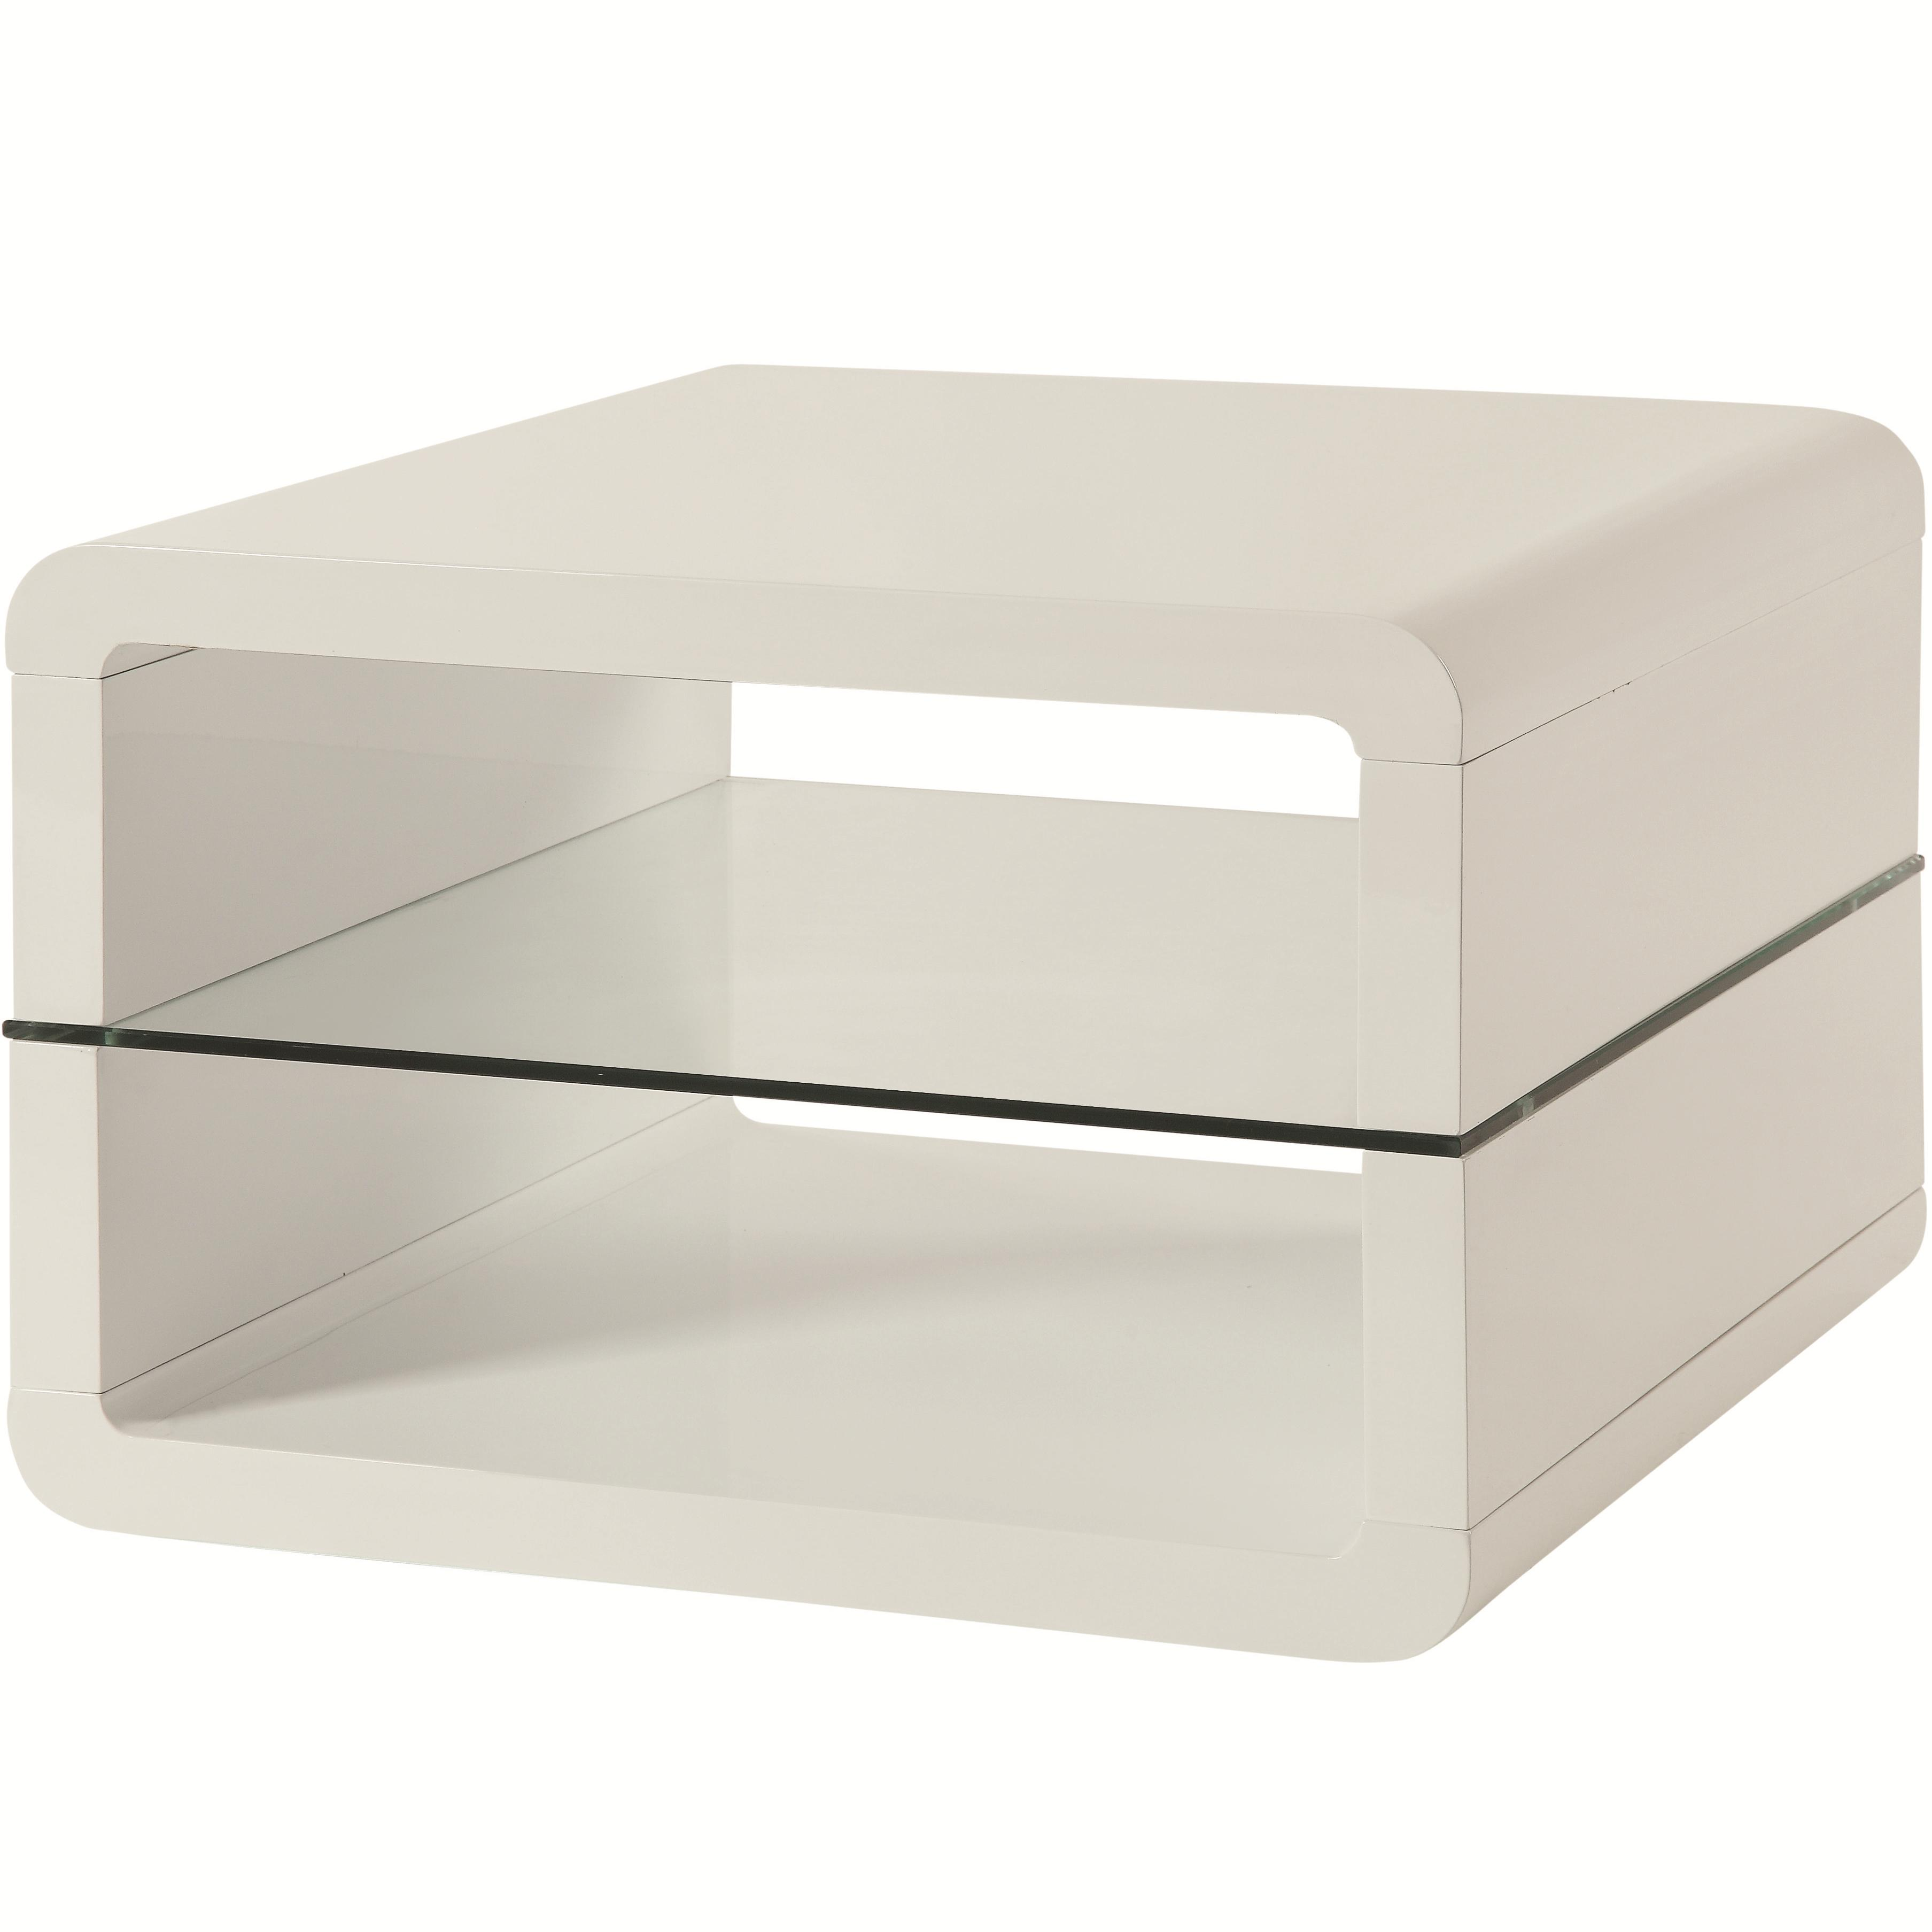 703267 end table with 2 shelves